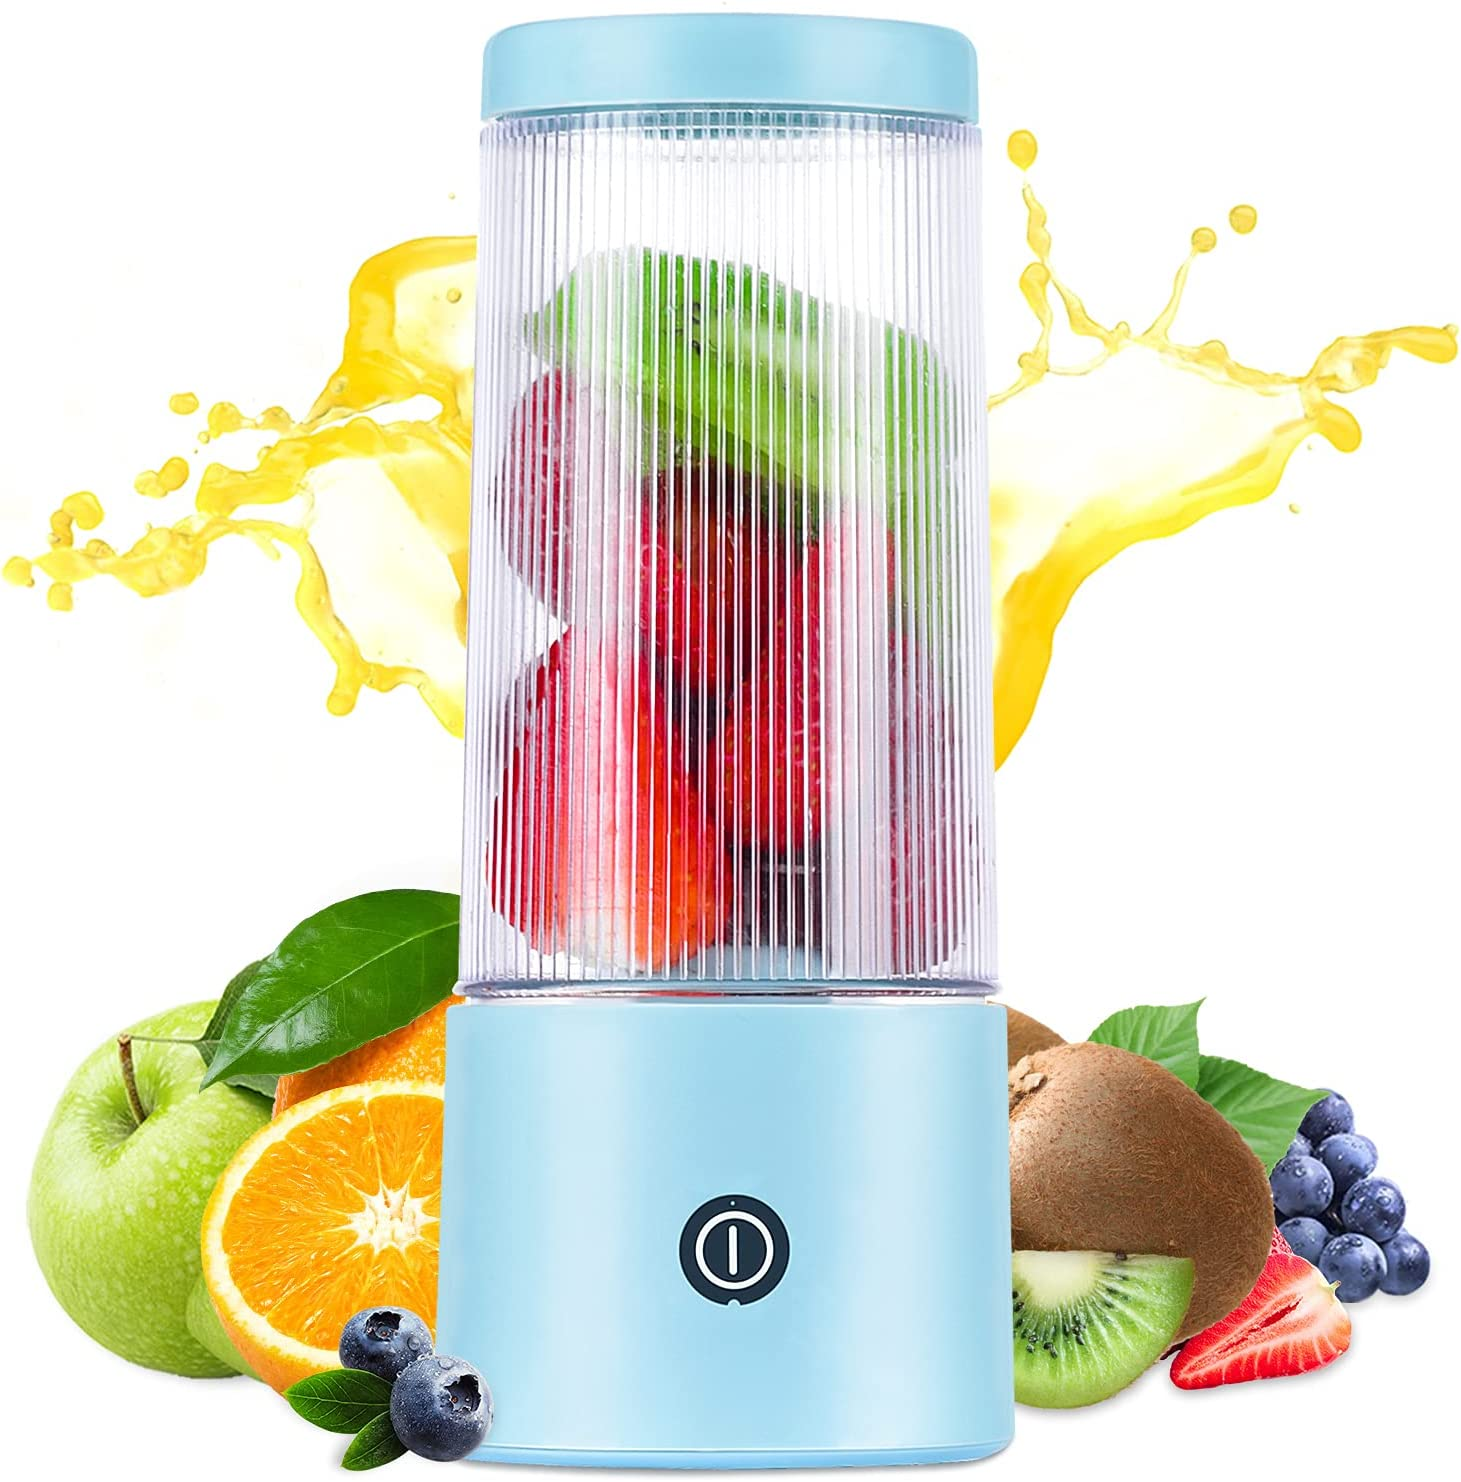 HOPENE Portable Blender, Safety Personal Size Blender for Shakes and Smoothies,Fruit Juicer Cup,12oz Bottle,Mini Blender USB Rechargeable for Travel Sports Office Gym and Outdoors(Blue)